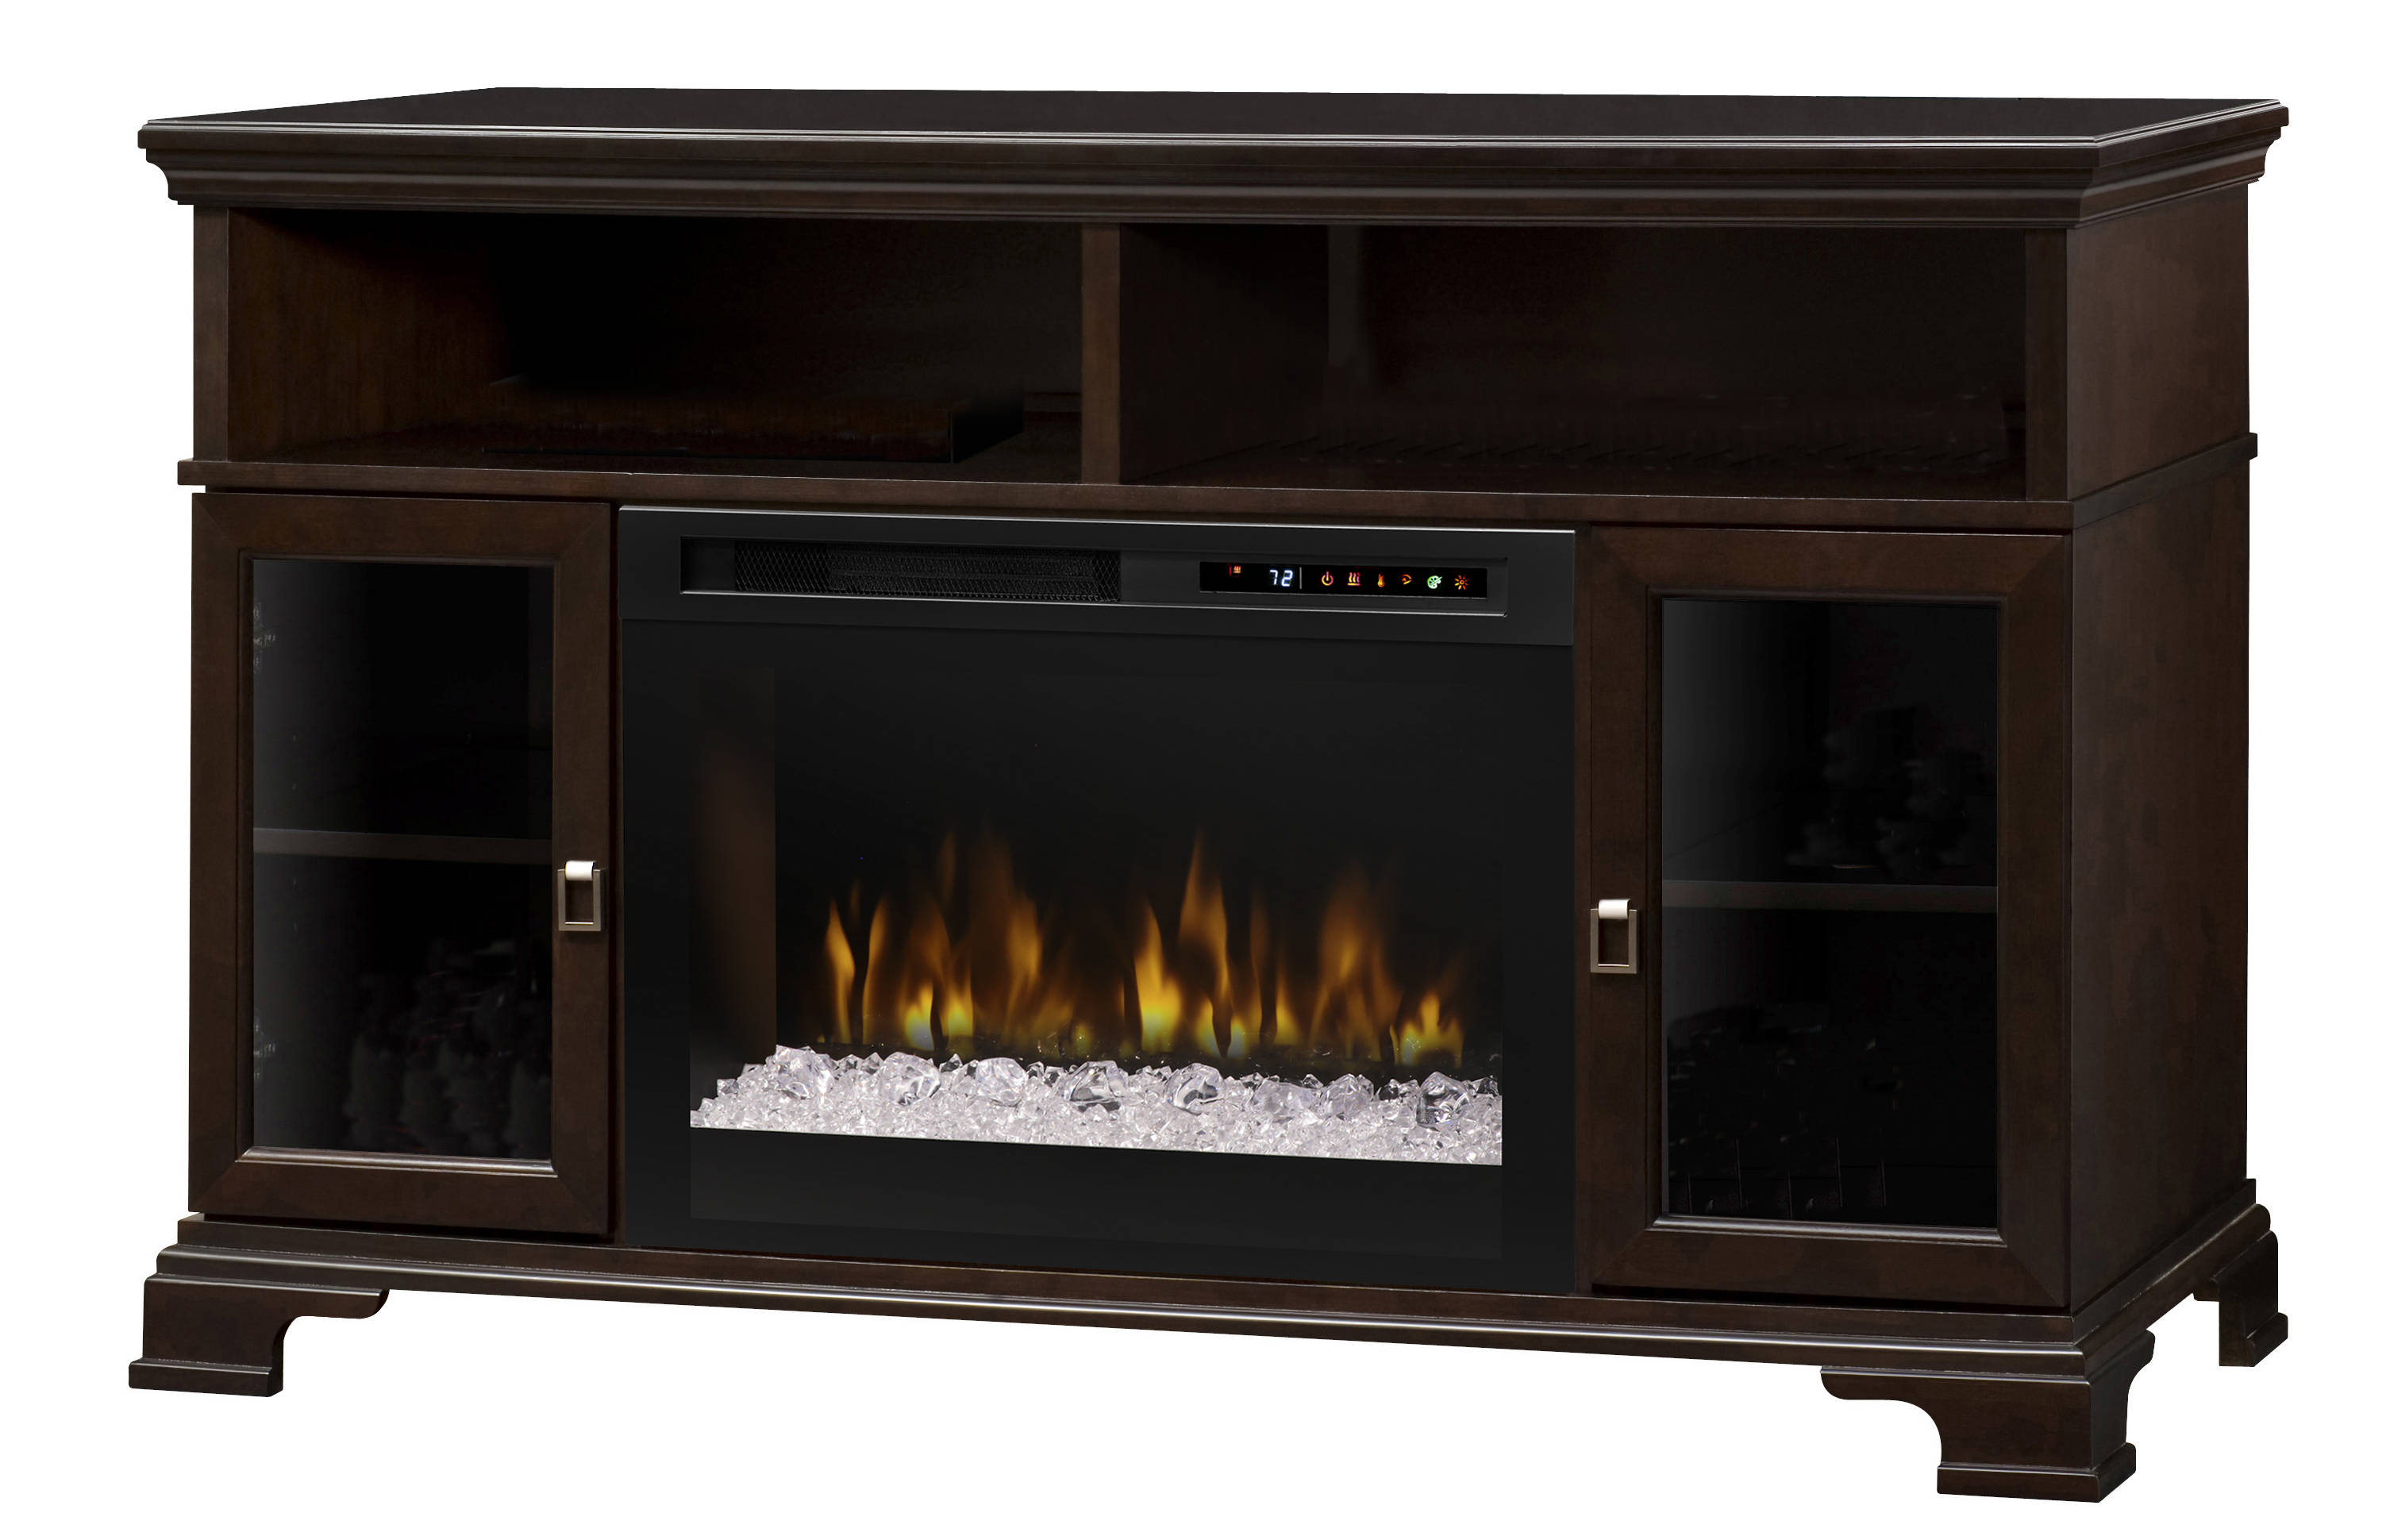 Dimplex brookings espresso wood media console electric - Going to bed with embers in fireplace ...